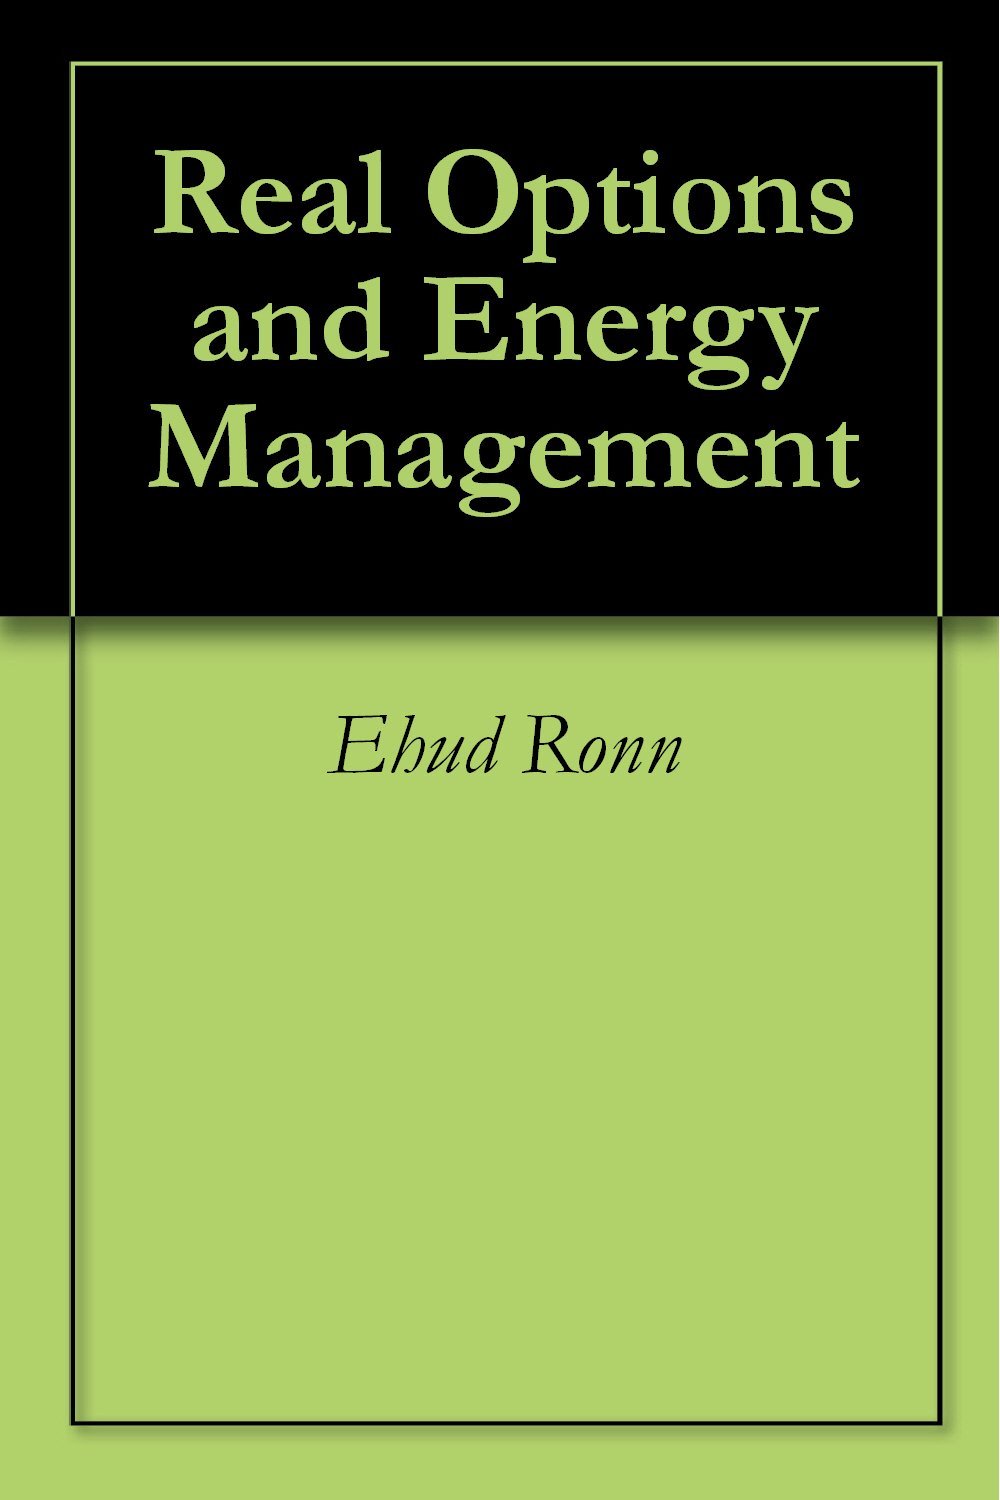 Real Options and Energy Management